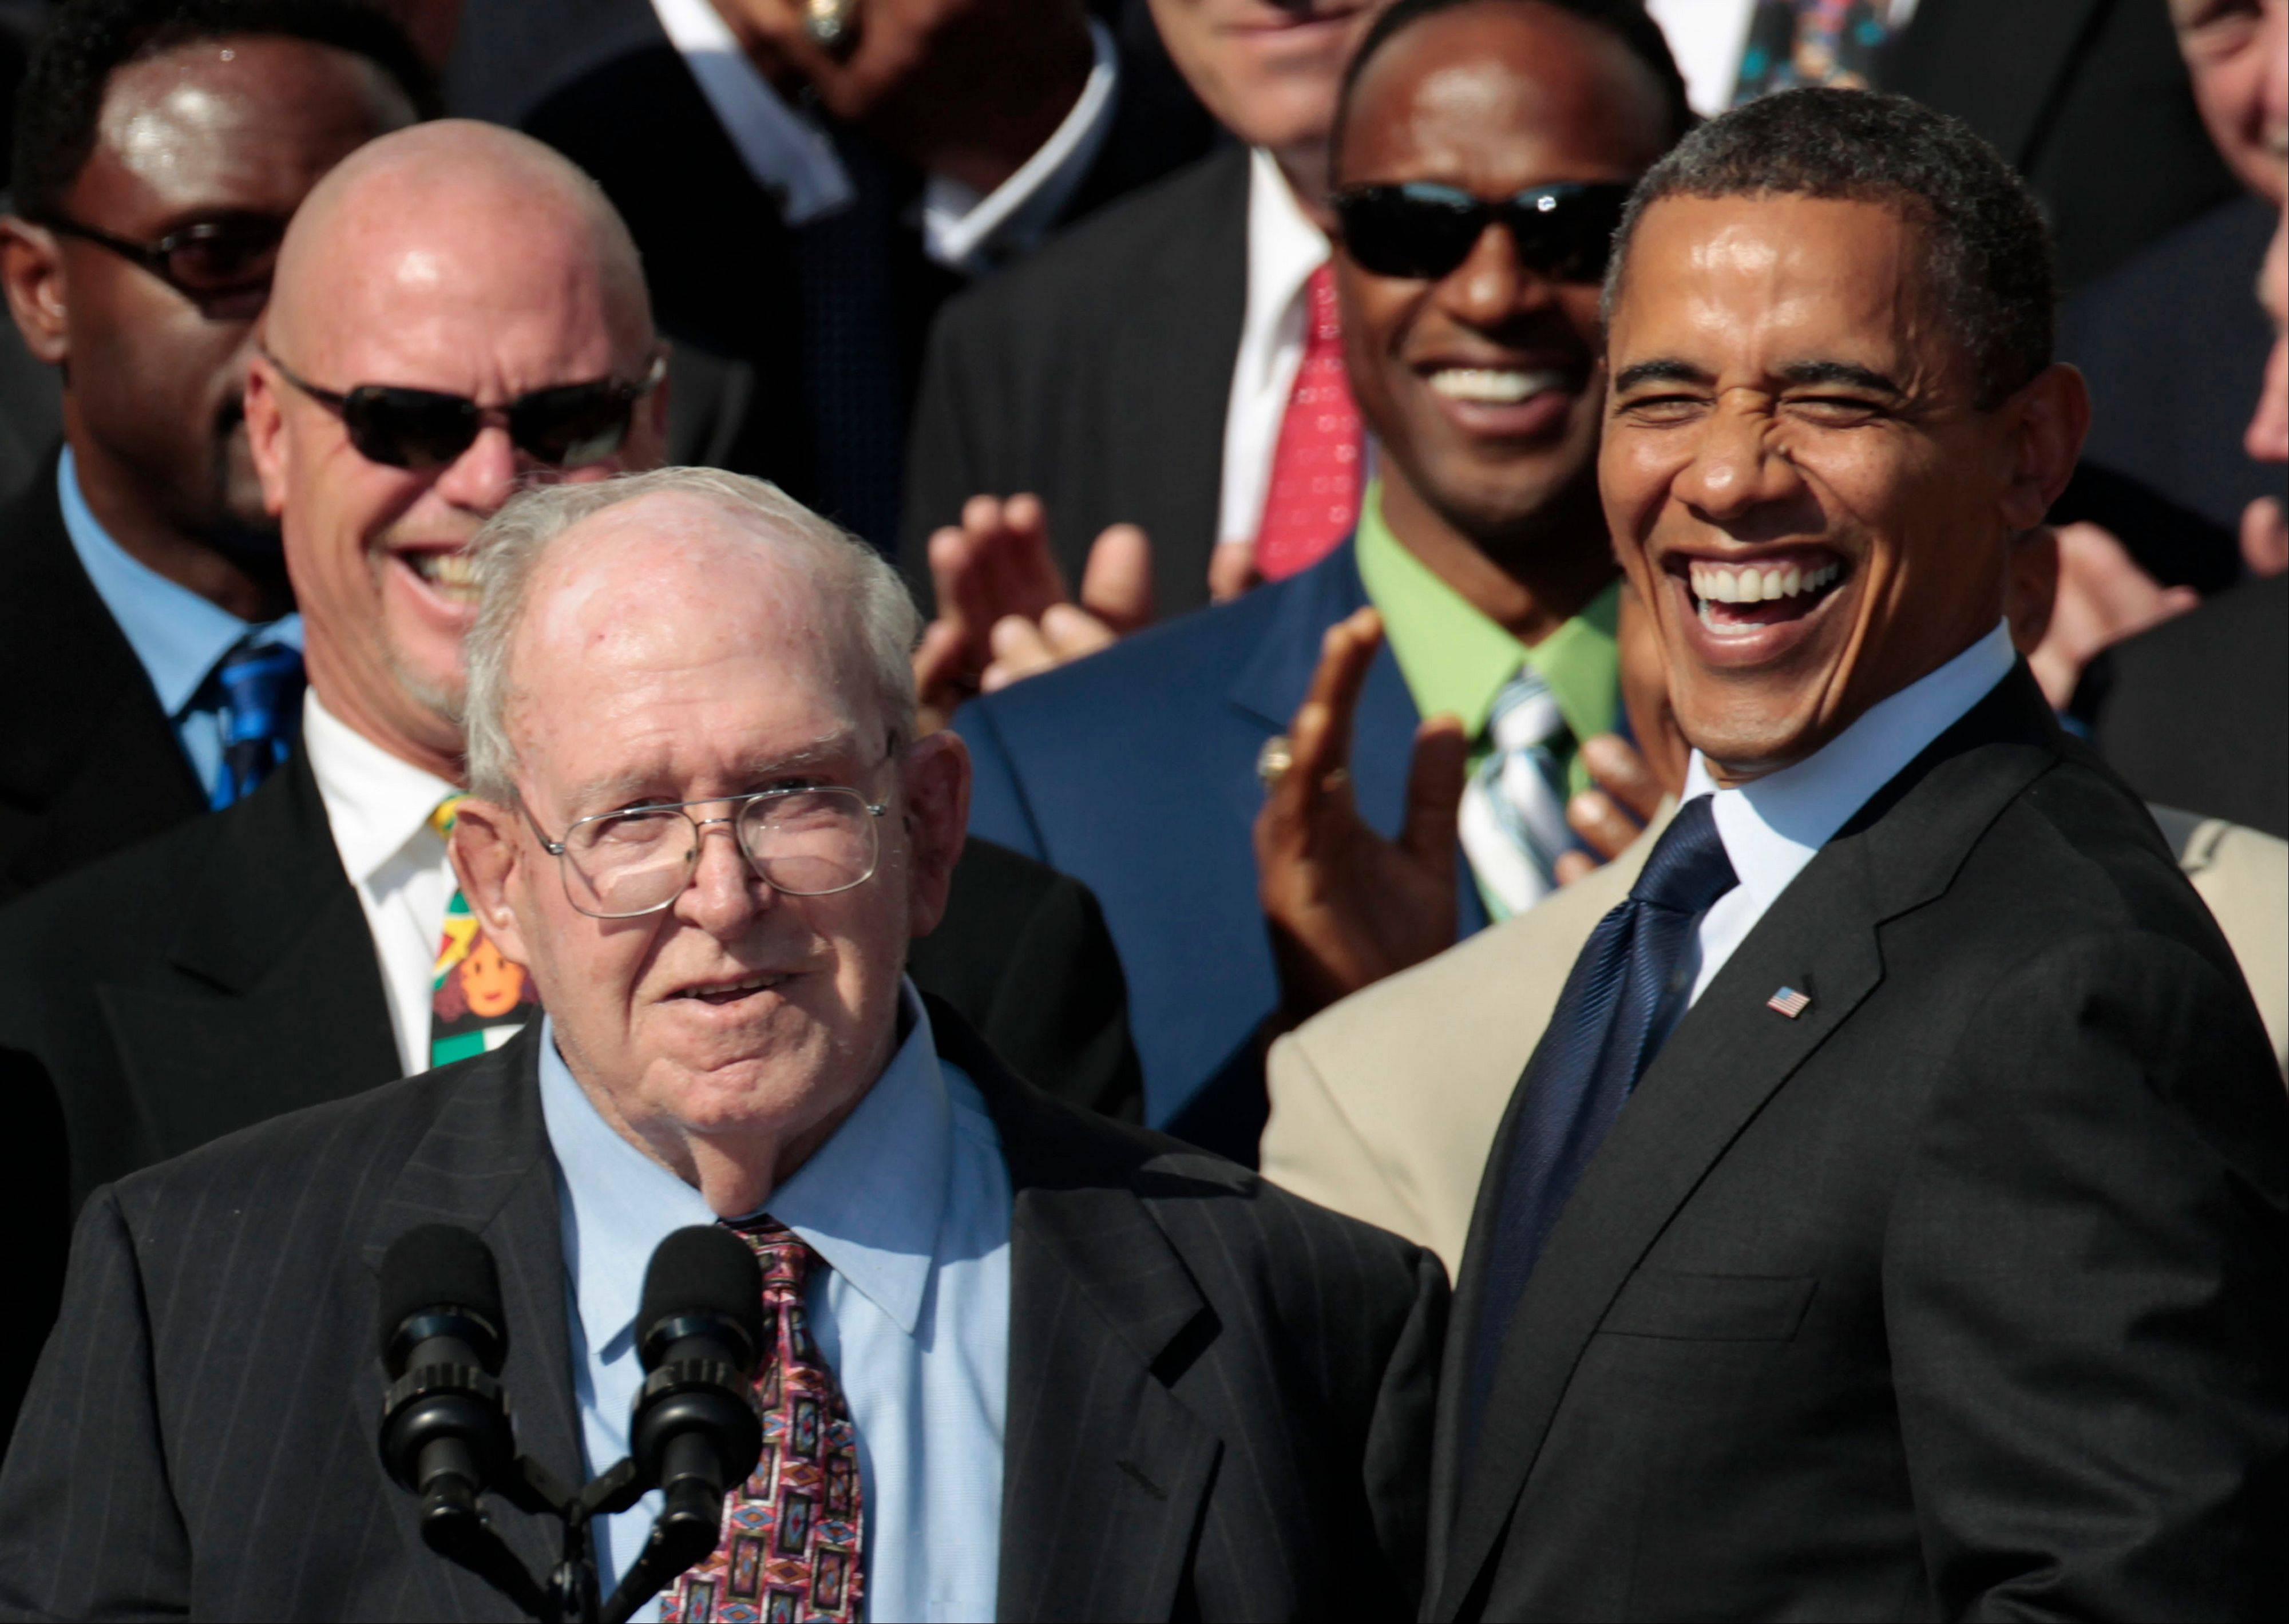 ASSOCIATED PRESSPresident Barack Obama, right, smiles at defensive coordinator Buddy Ryan, speaking left, as he stands with the 1985 Super Bowl XX Champions Chicago Bears football team during a ceremony on the South Lawn of the White House.